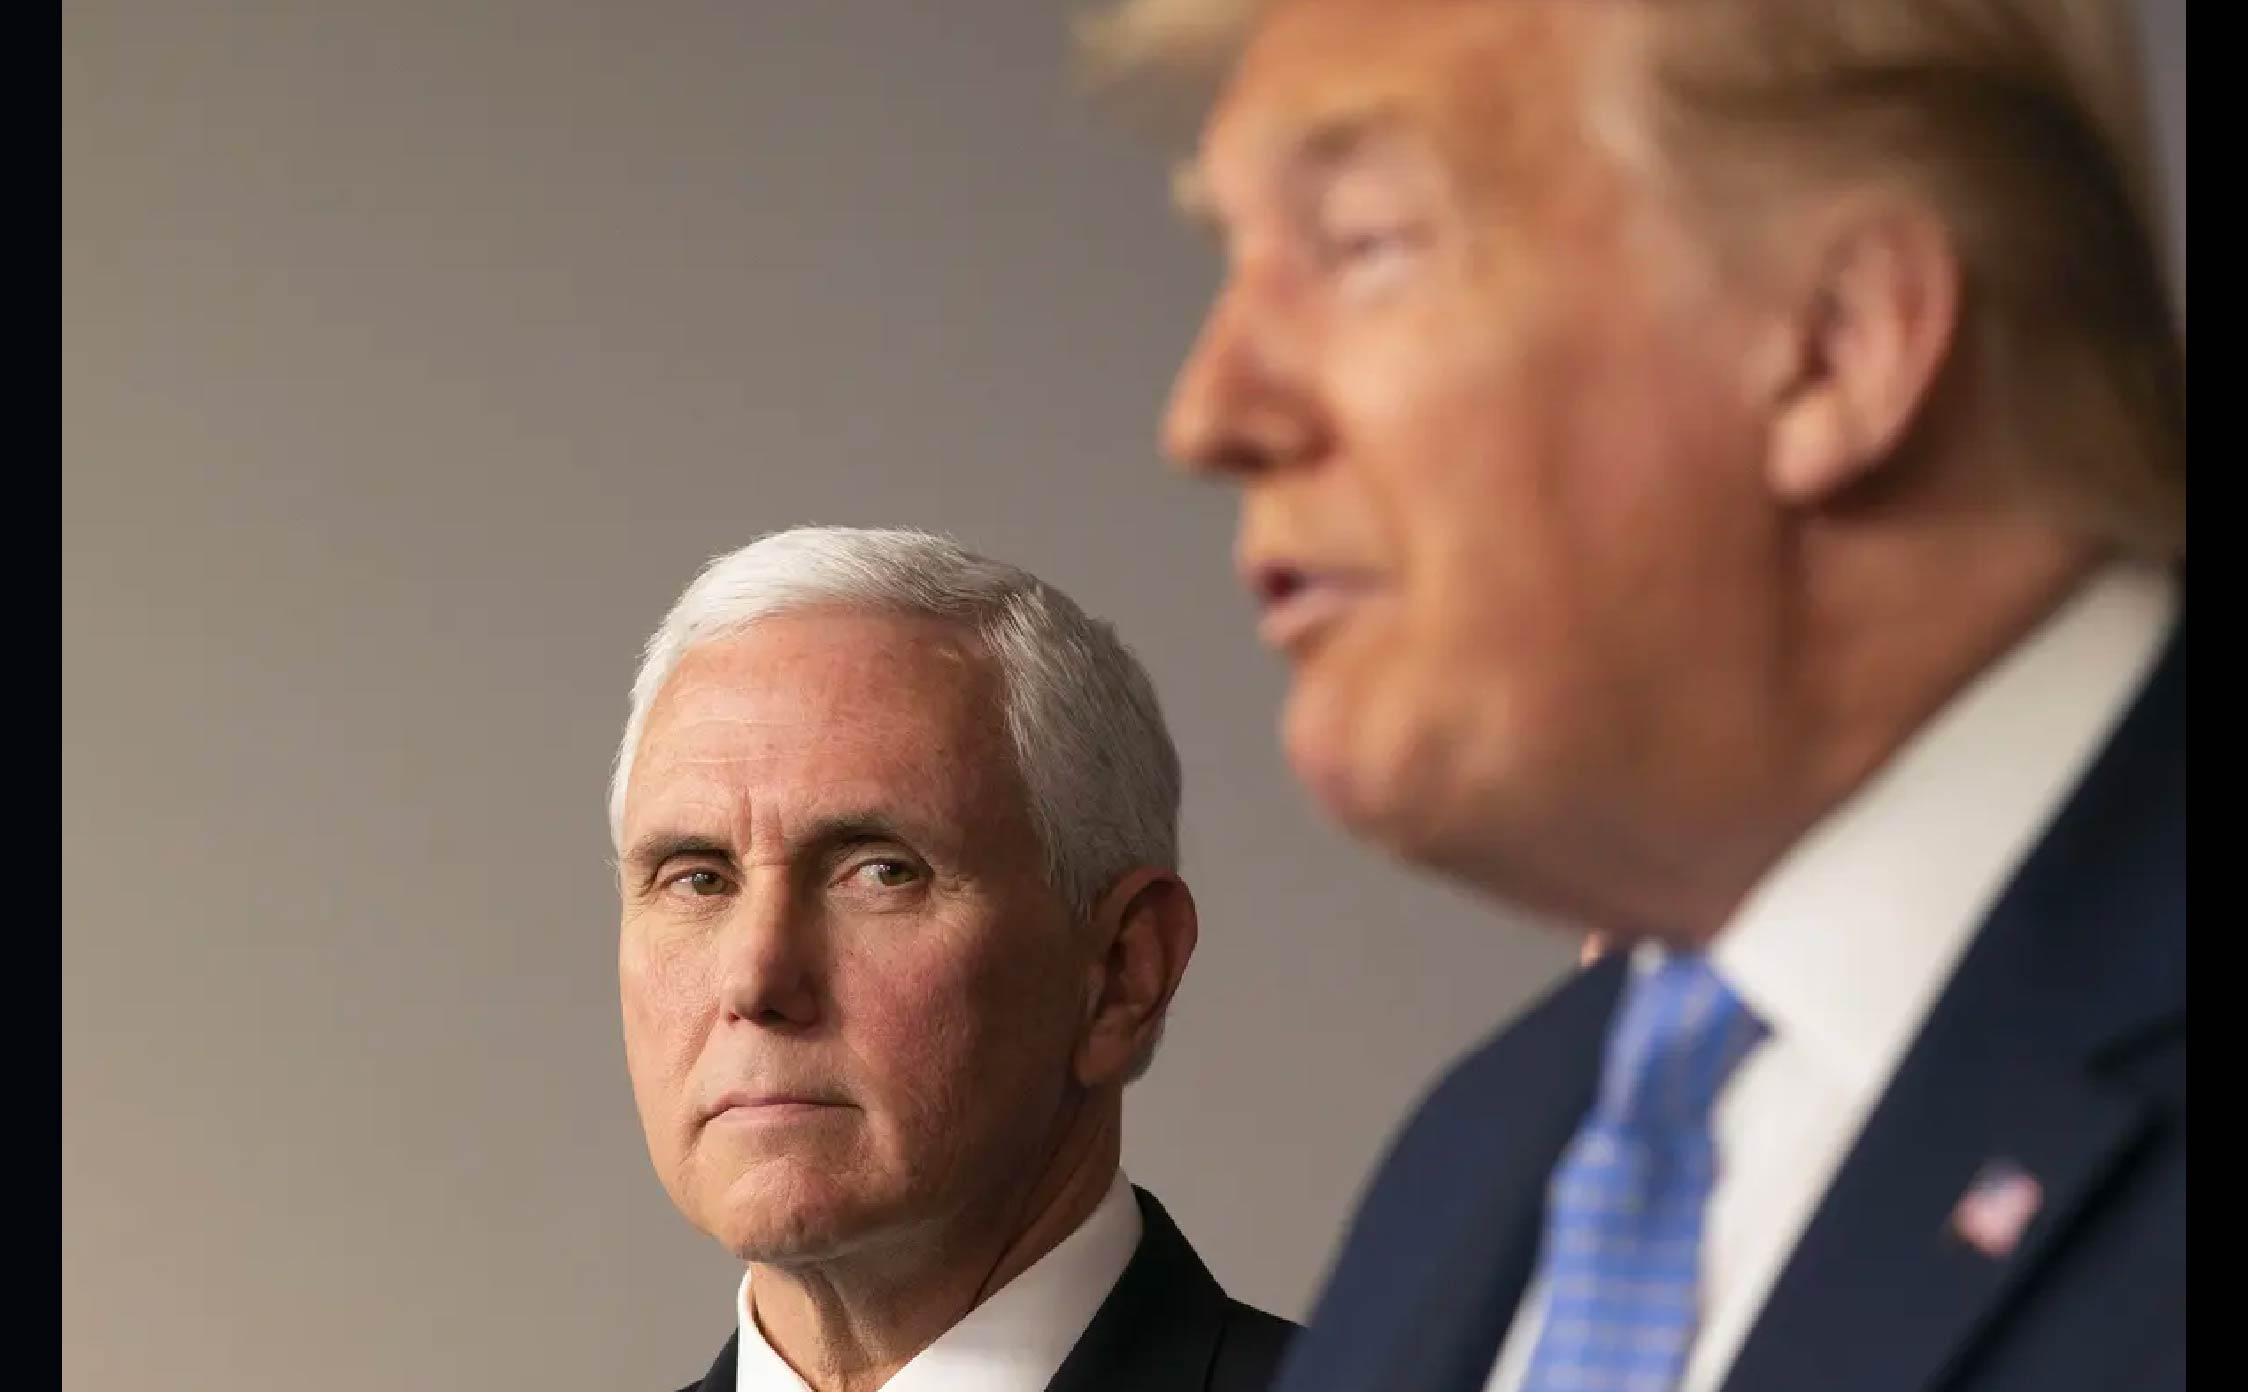 What is Mike Pence Doing? His Latest Move Has MAGA Scratching Their Heads...